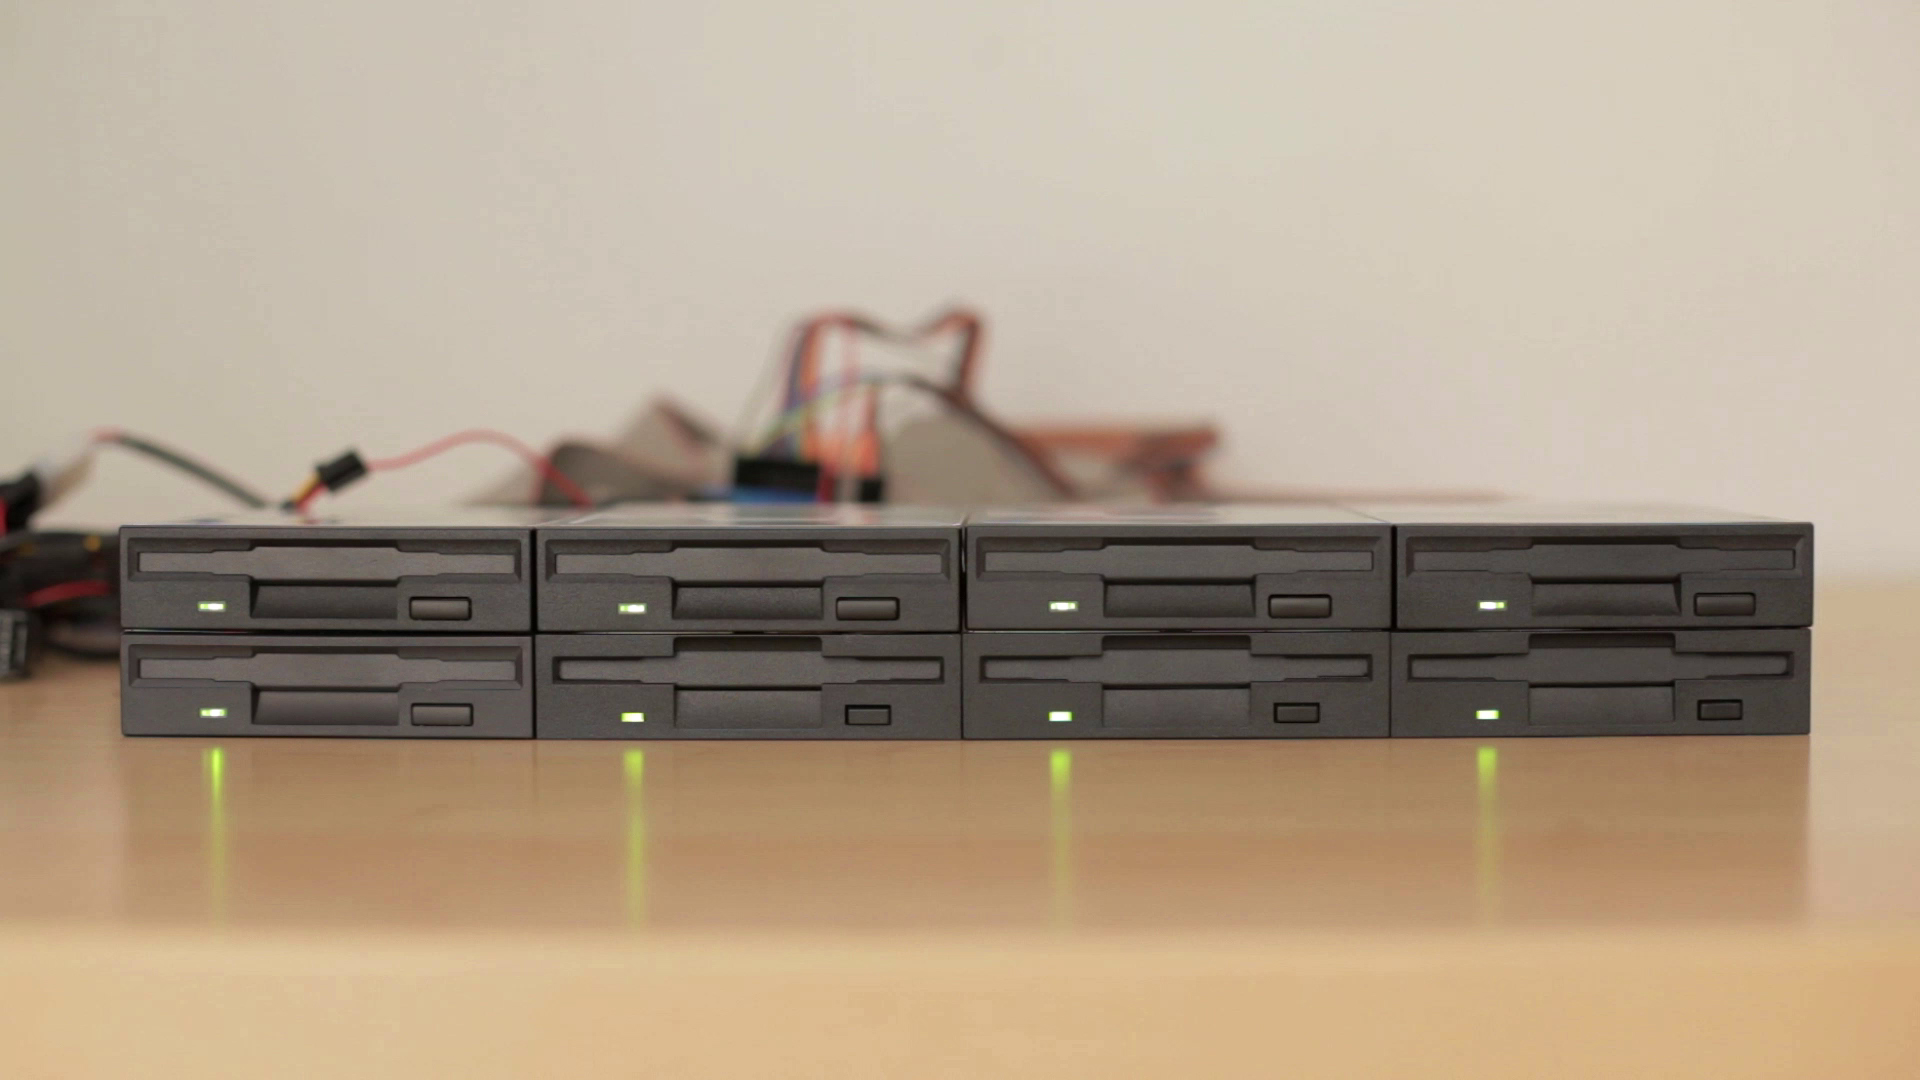 Musical Floppy Drives